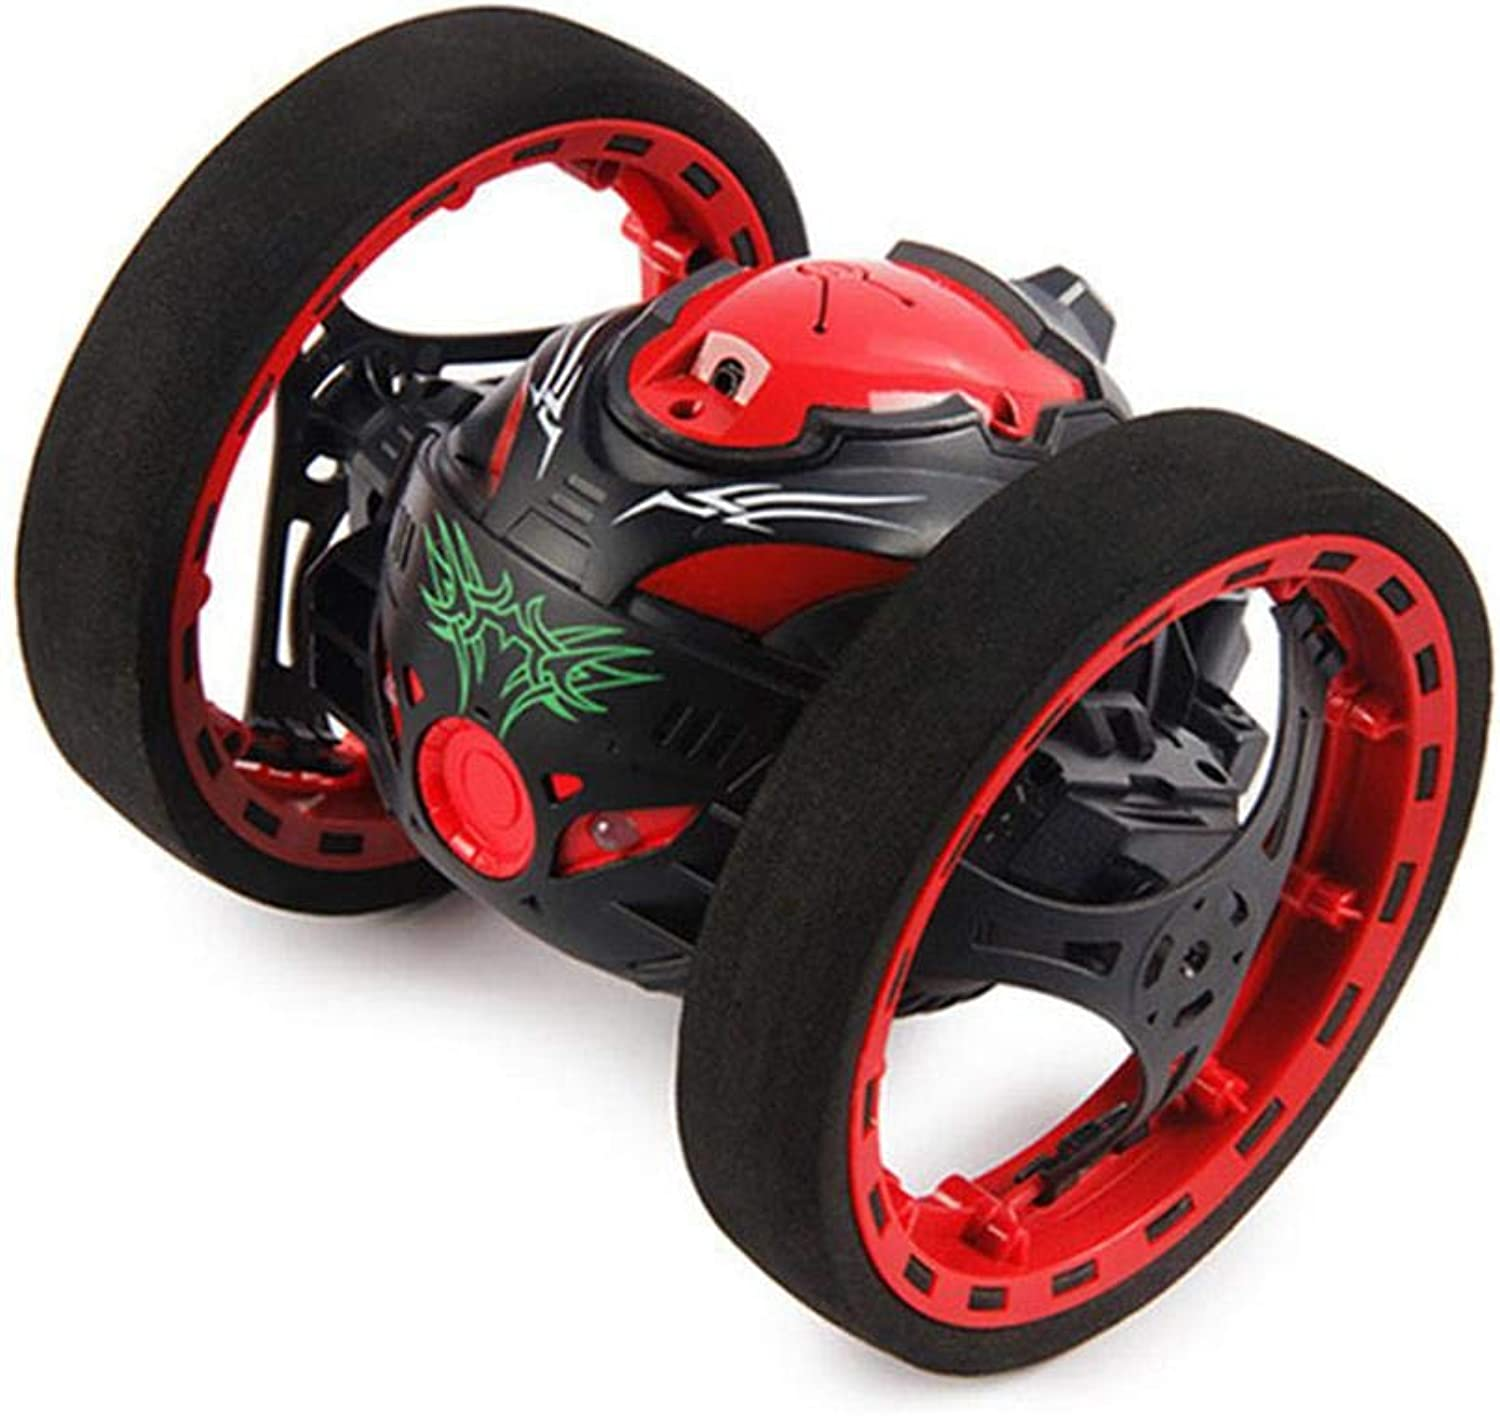 AOLVO Leaping Dragon 2.4G RC Bounce Car with LED Night Lights Car Kids Toys Birthday New Gifts for Boys Girls (Black White)